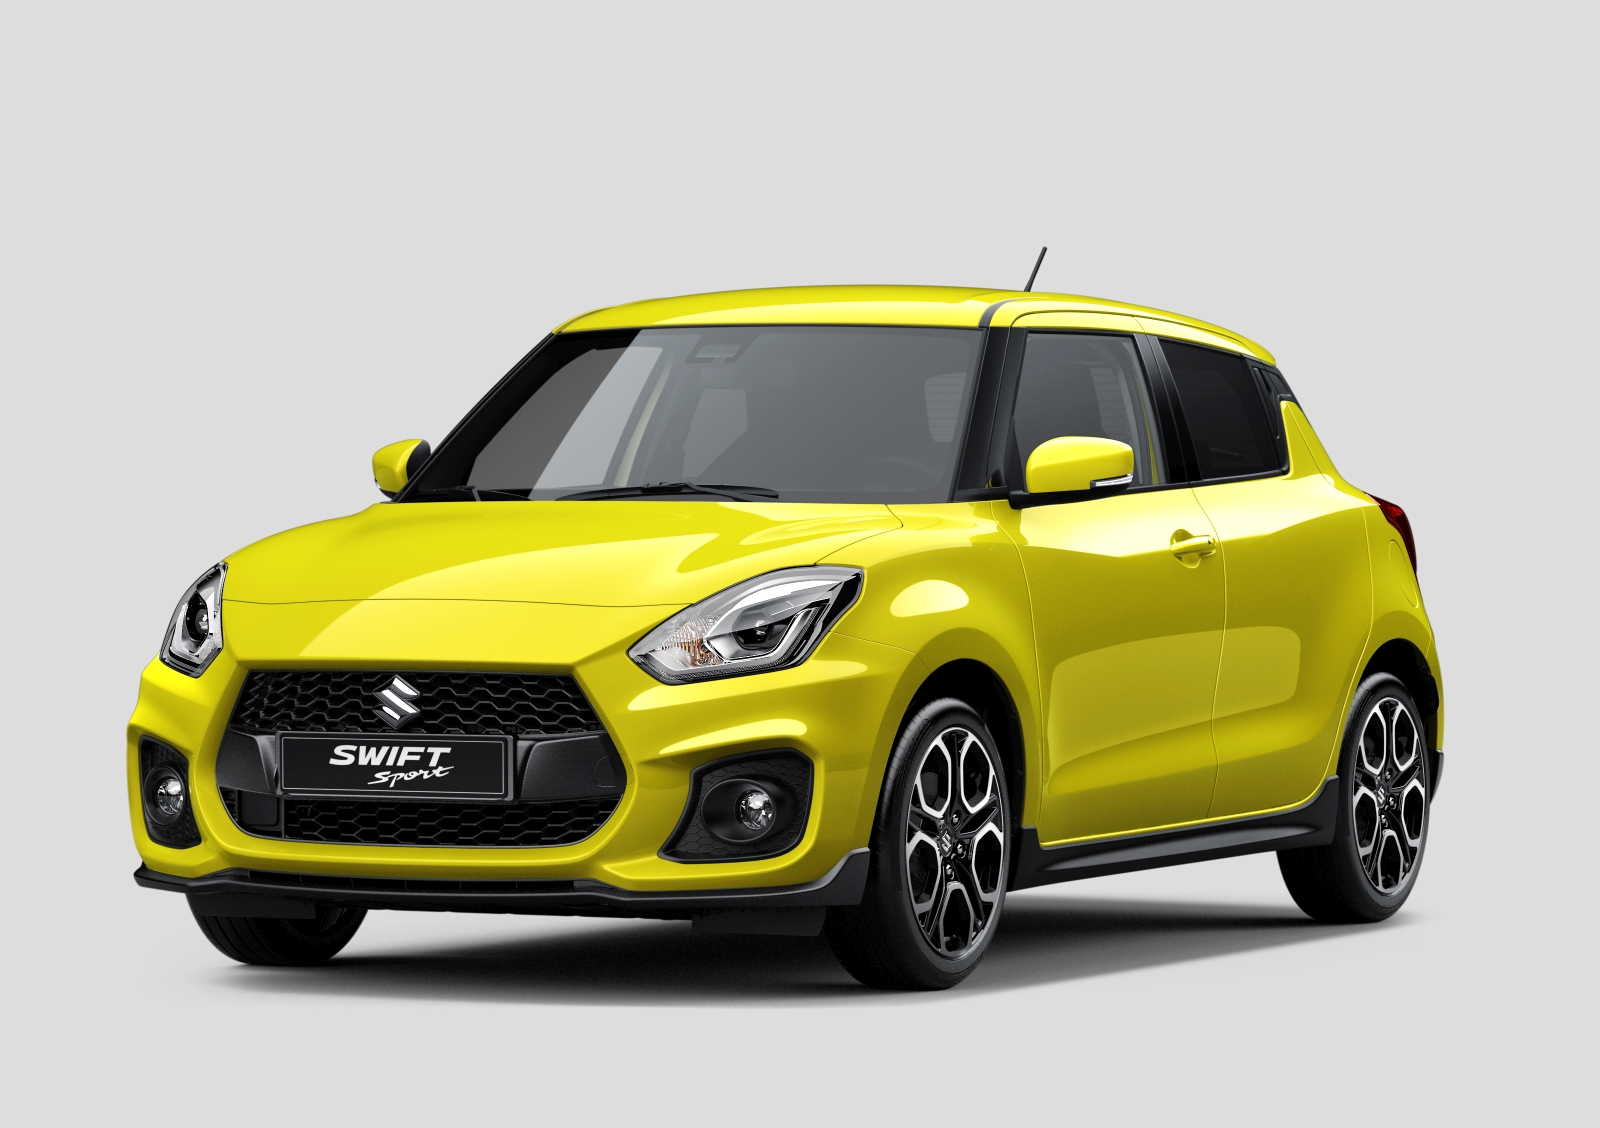 3756World-premiere_-New-Swift-Sport-to-debut-at-67th-IAA-Frankfurt-Motor-Show